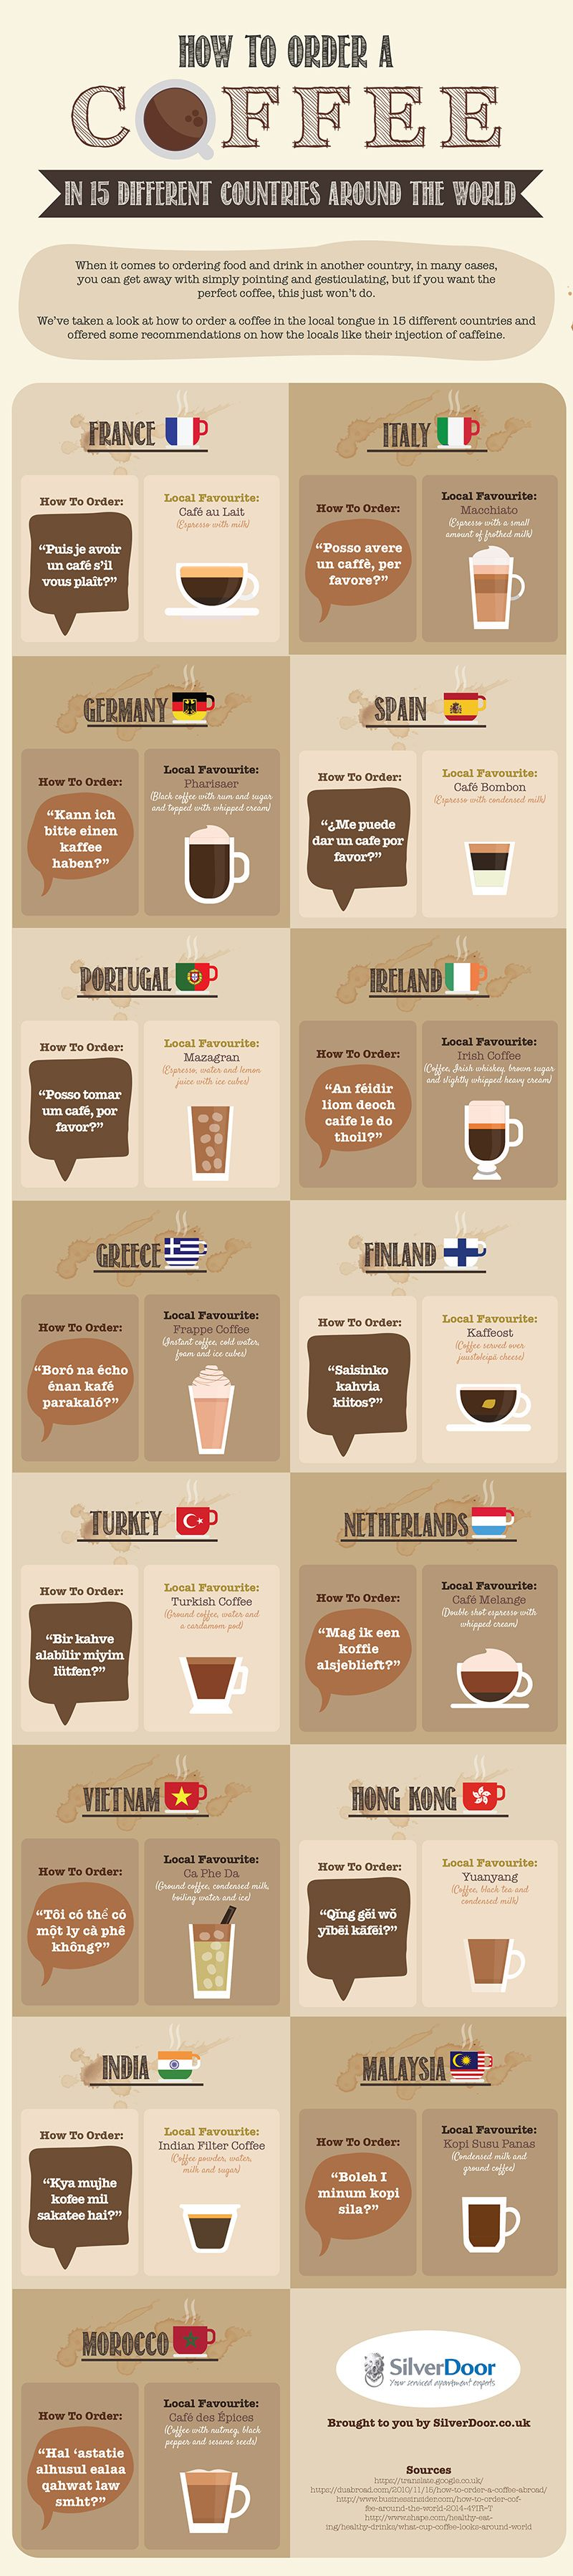 How to drink coffee in different countries of the world